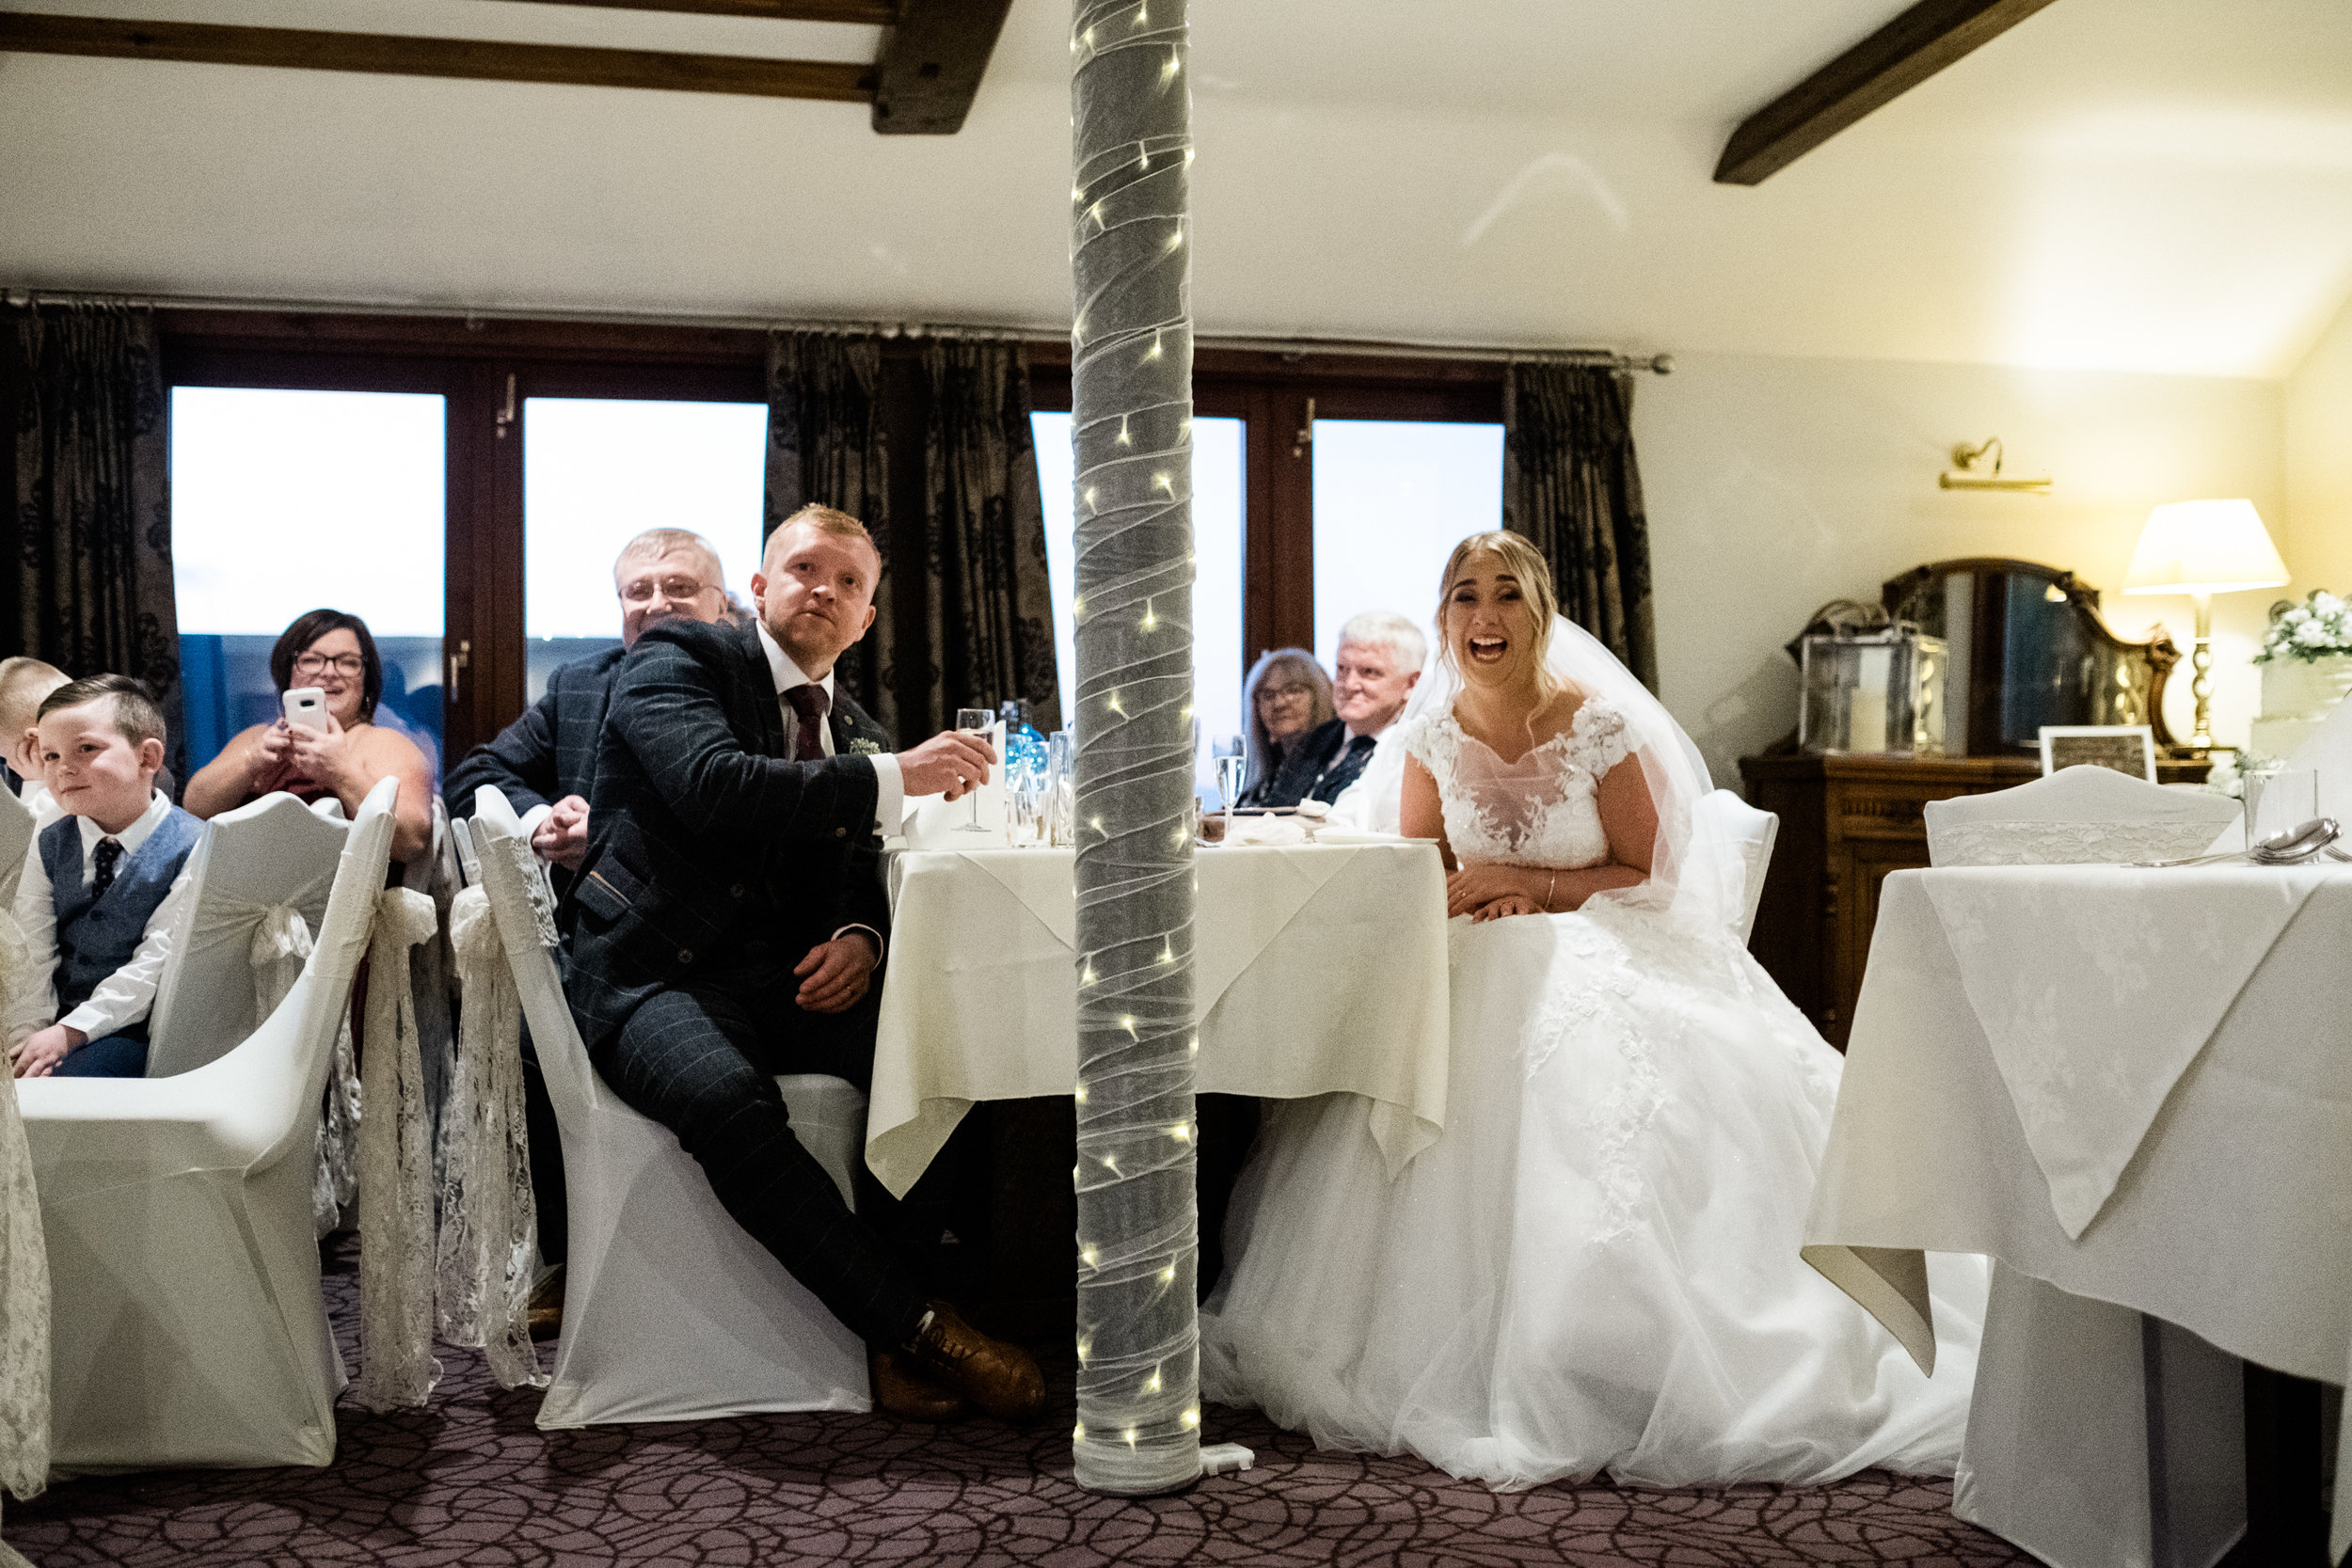 Autumn Wedding Photography at The Three Horseshoes, Blackshaw Moor, Staffordshire Moorlands - Jenny Harper-47.jpg